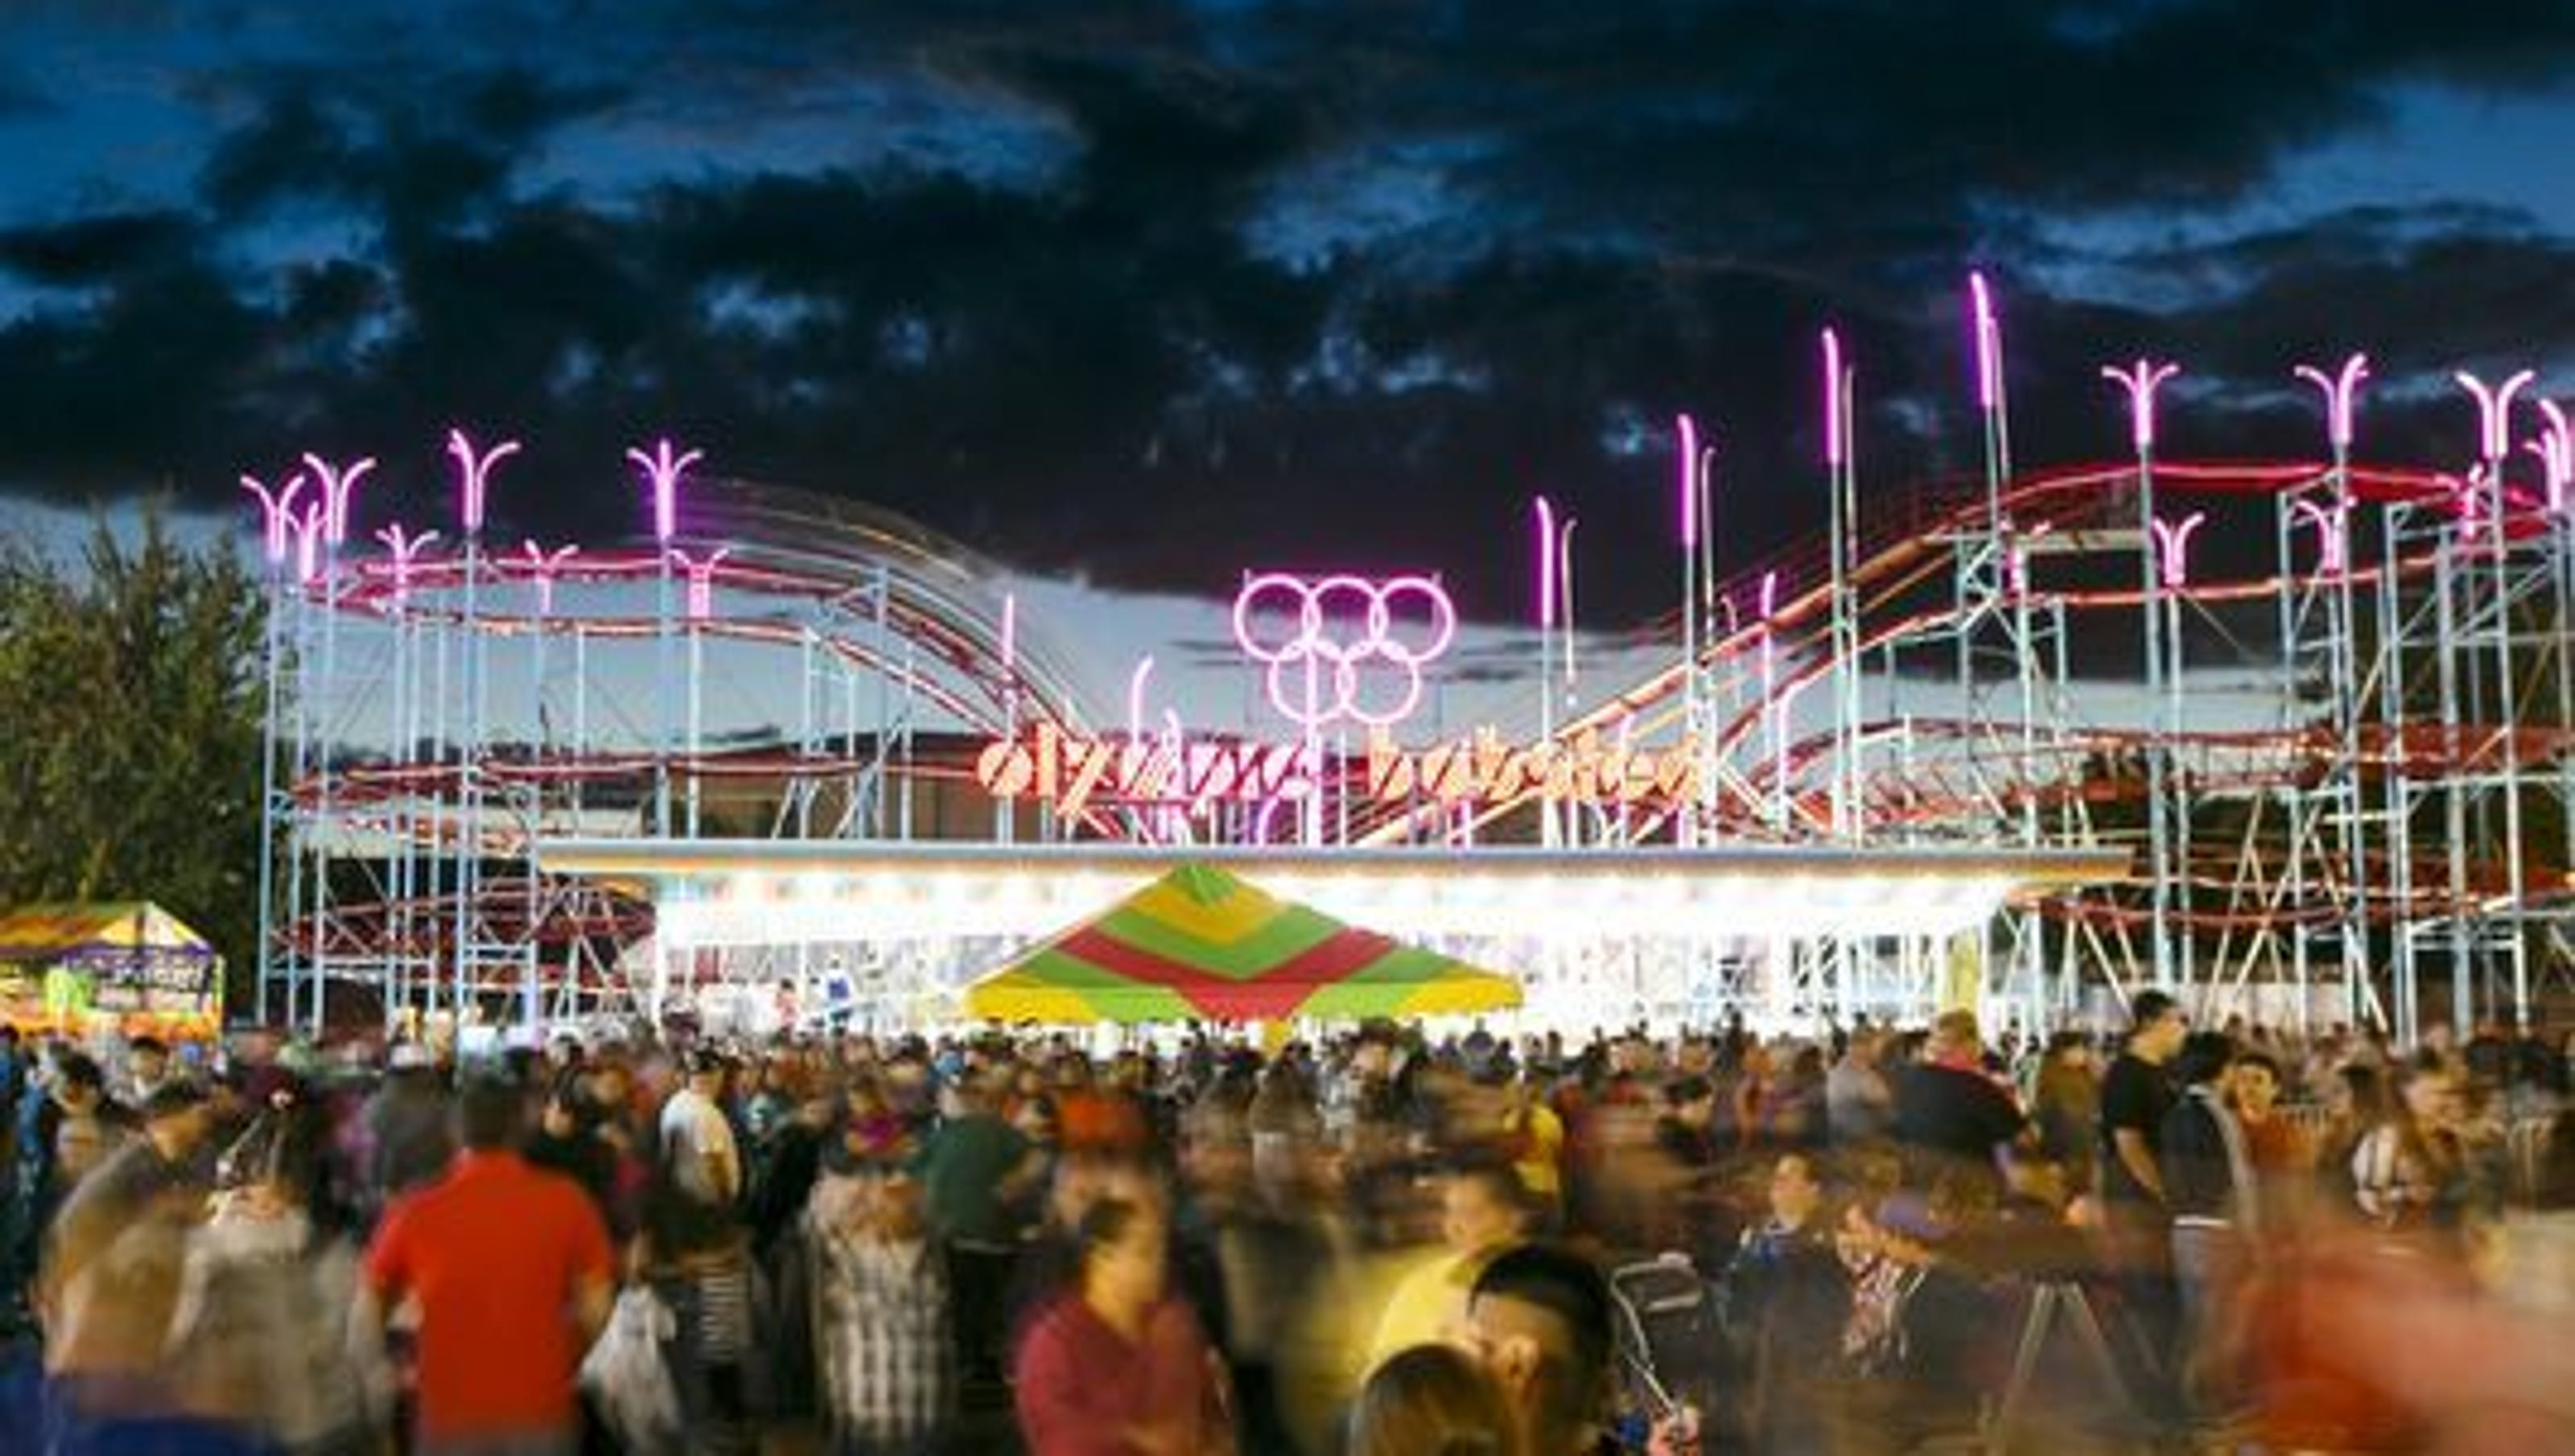 Oregon state fair dates in Melbourne